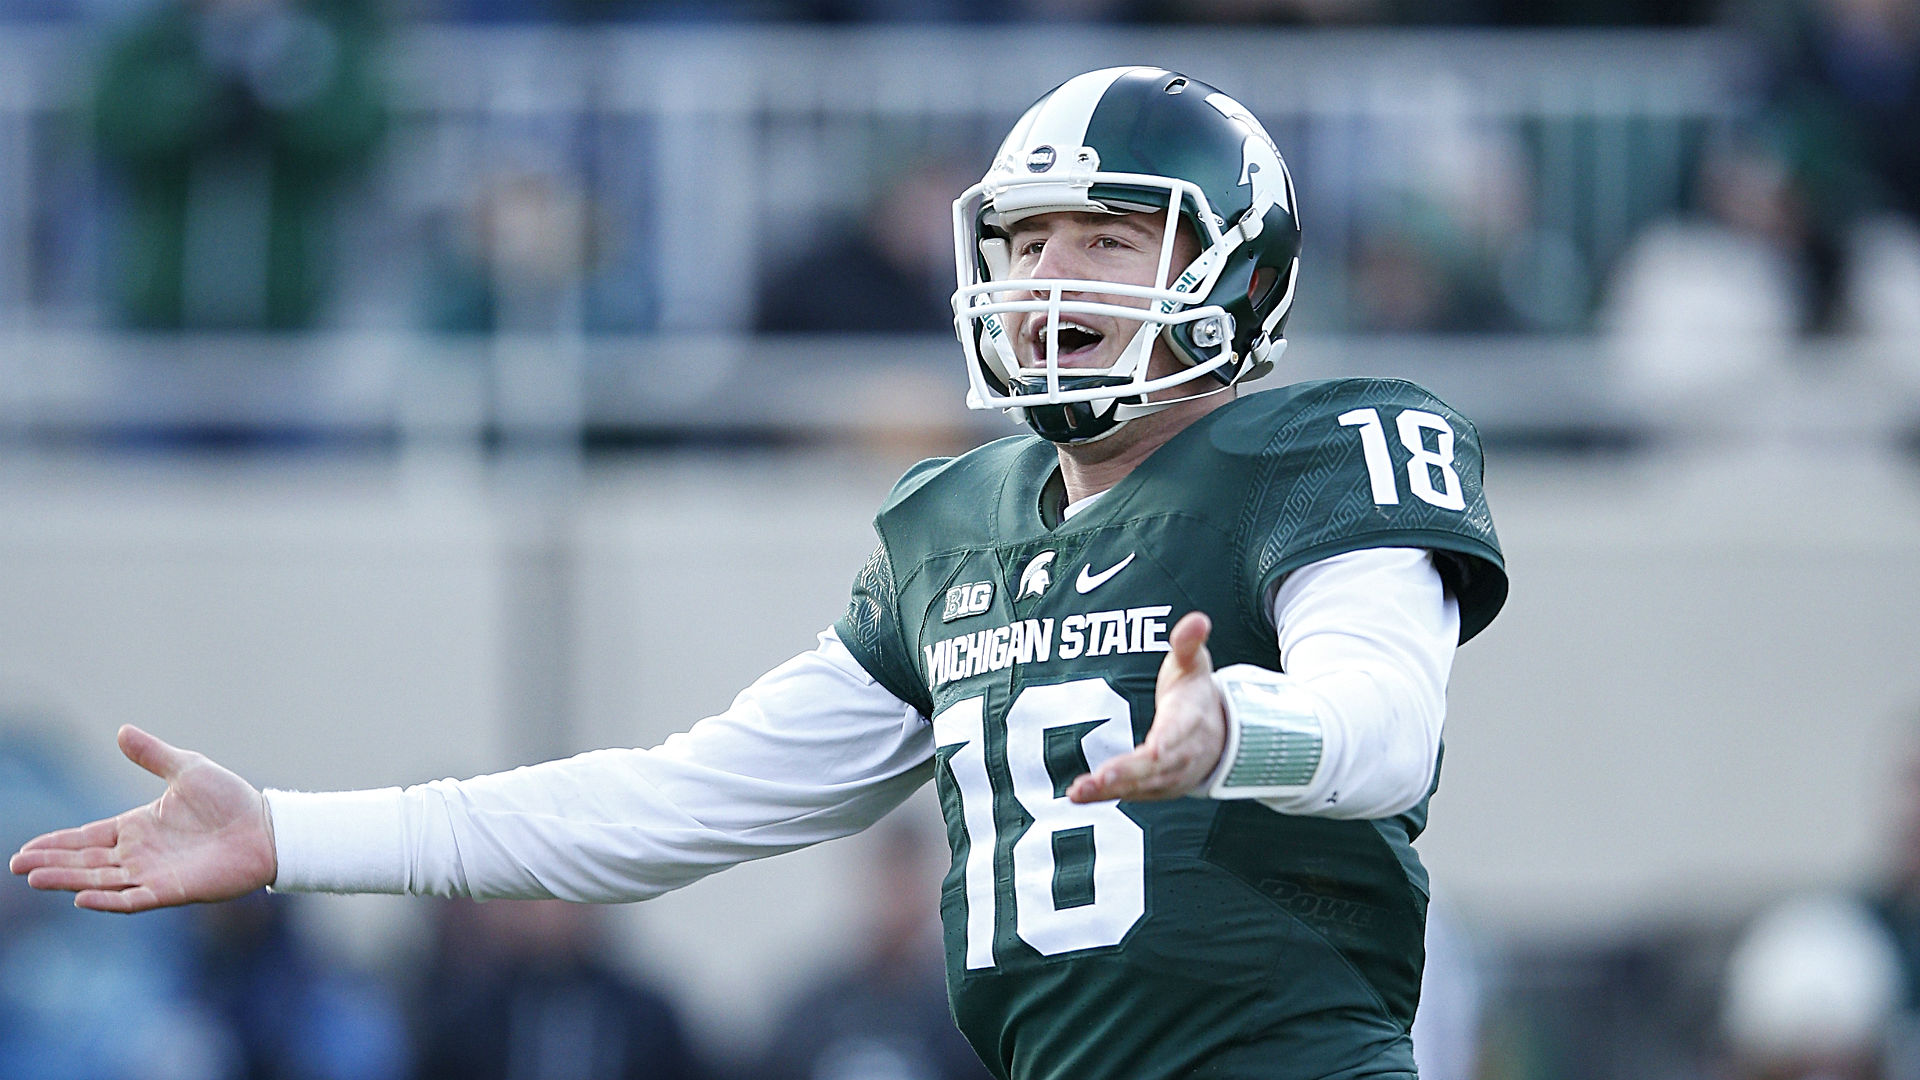 Connor Cook-112915-getty-ftr.jpg